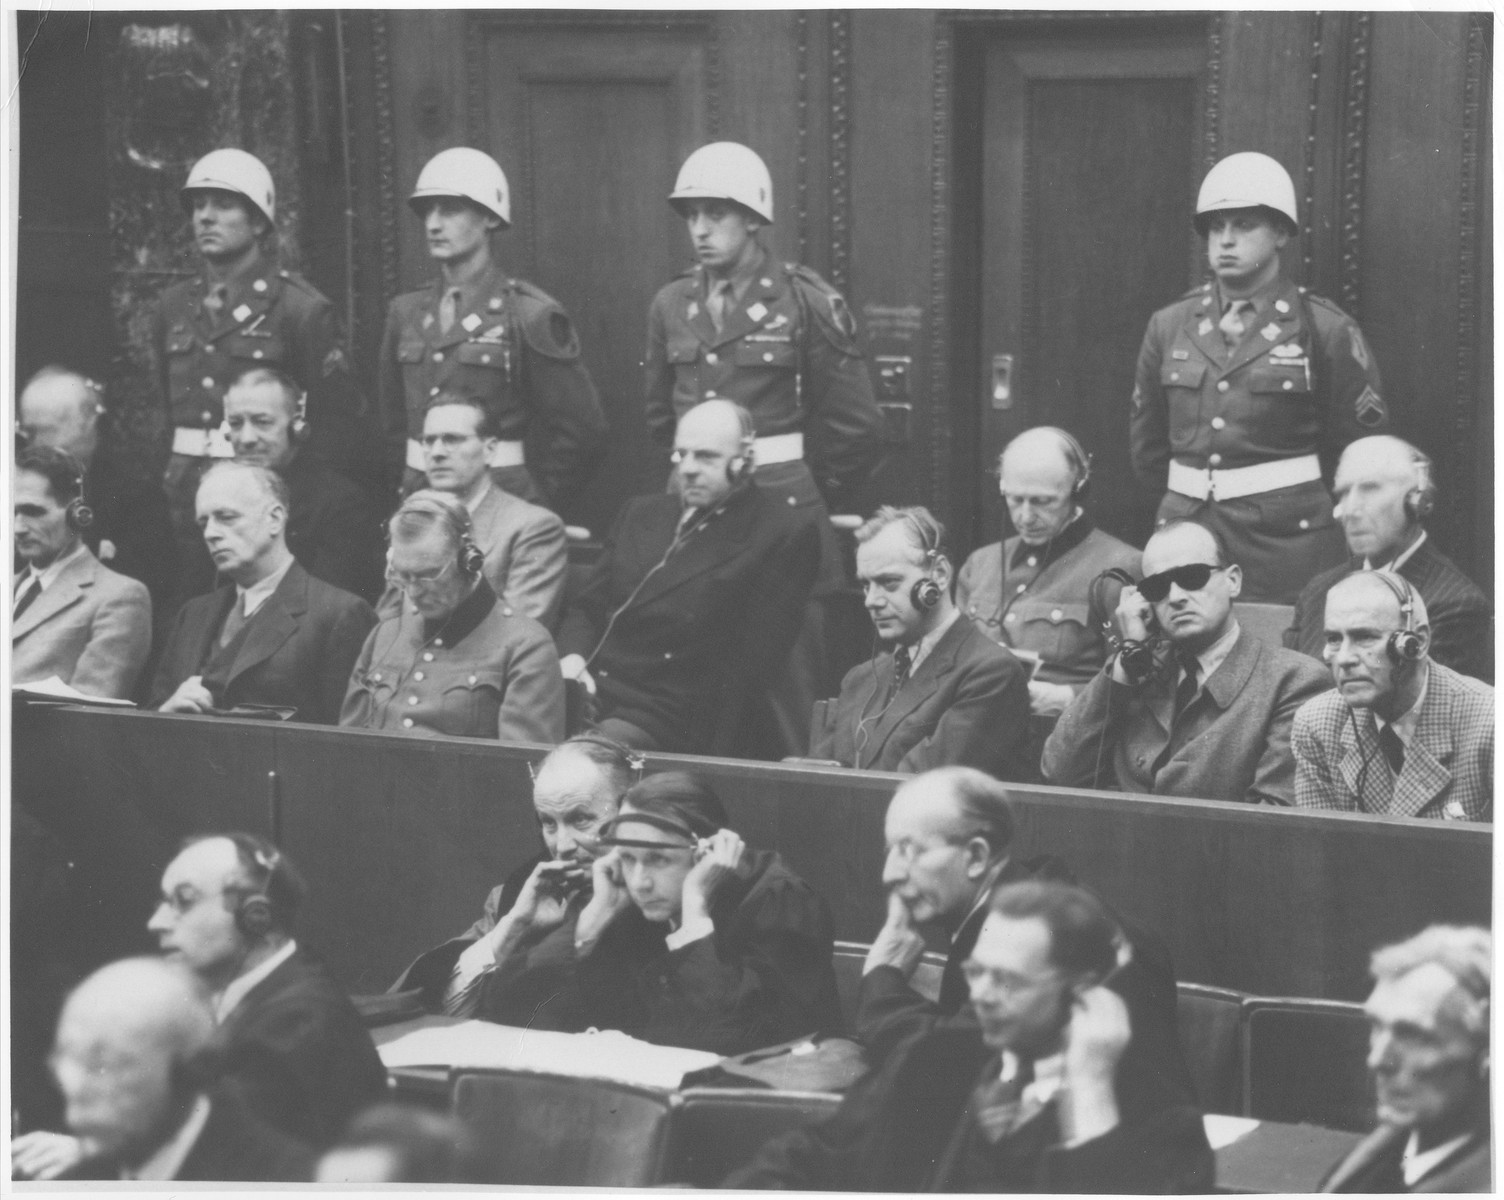 Defendants in the International Military Tribunal war crimes trial in Nuremberg sit in the prisoners' dock in front of a row of American military police.